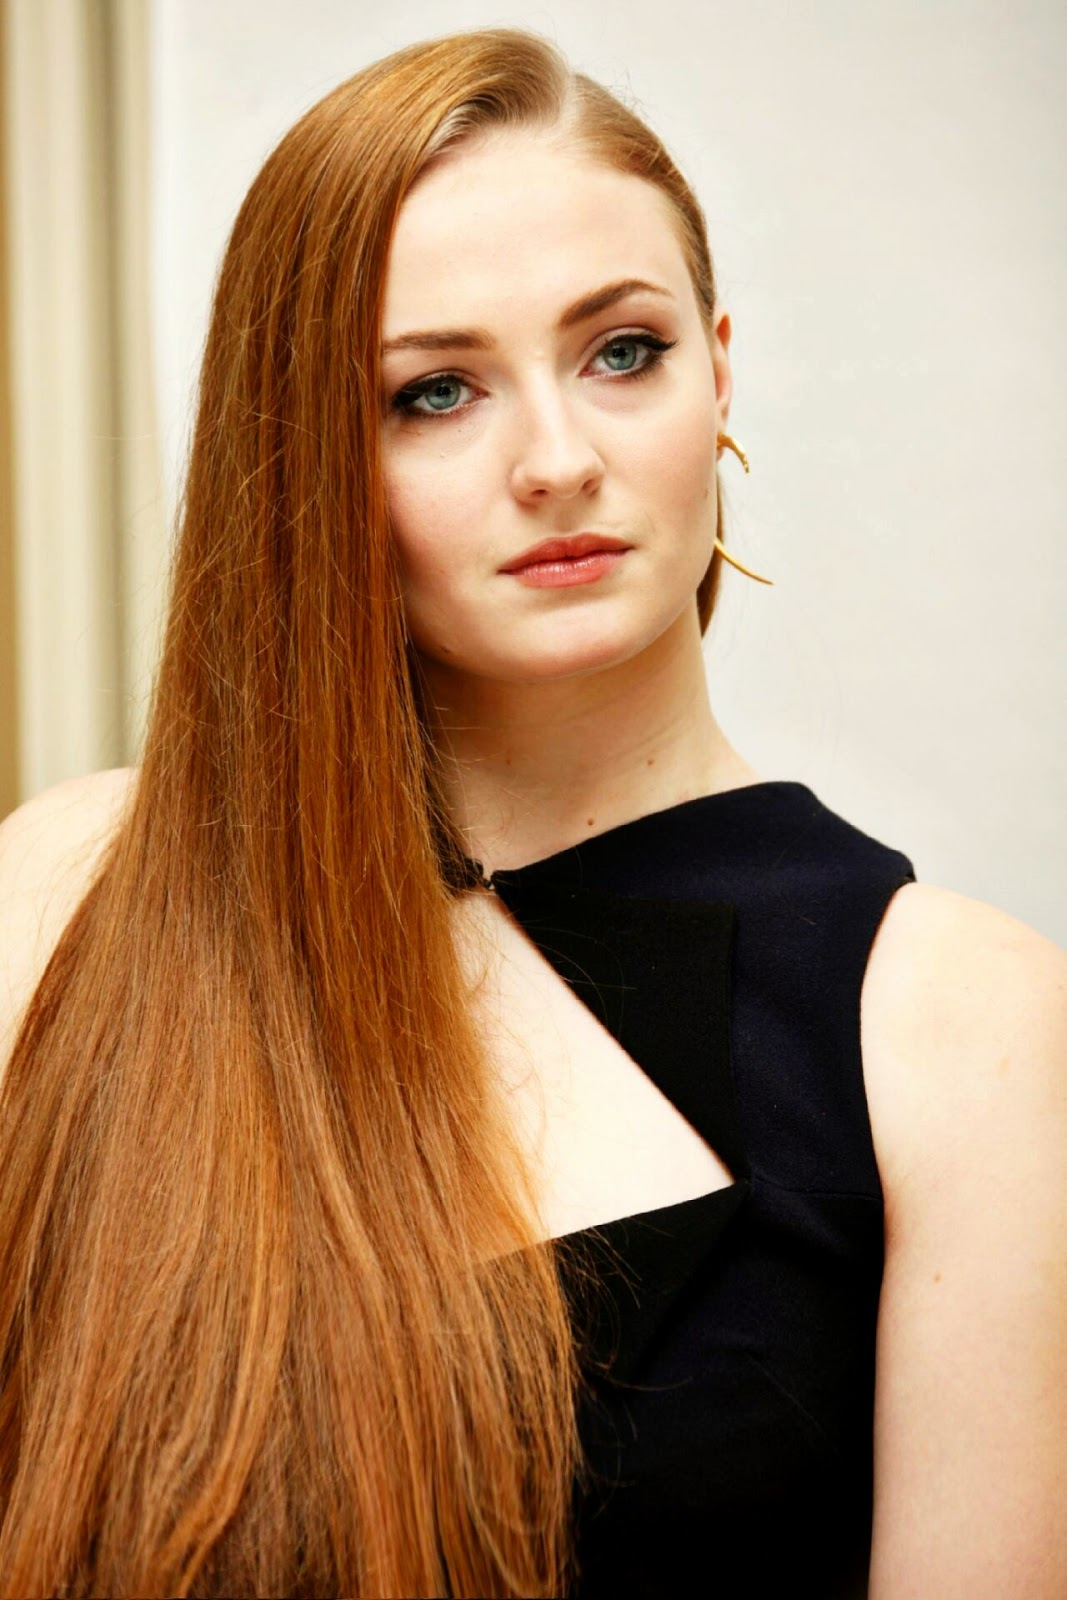 Sophie Turner Hot pics